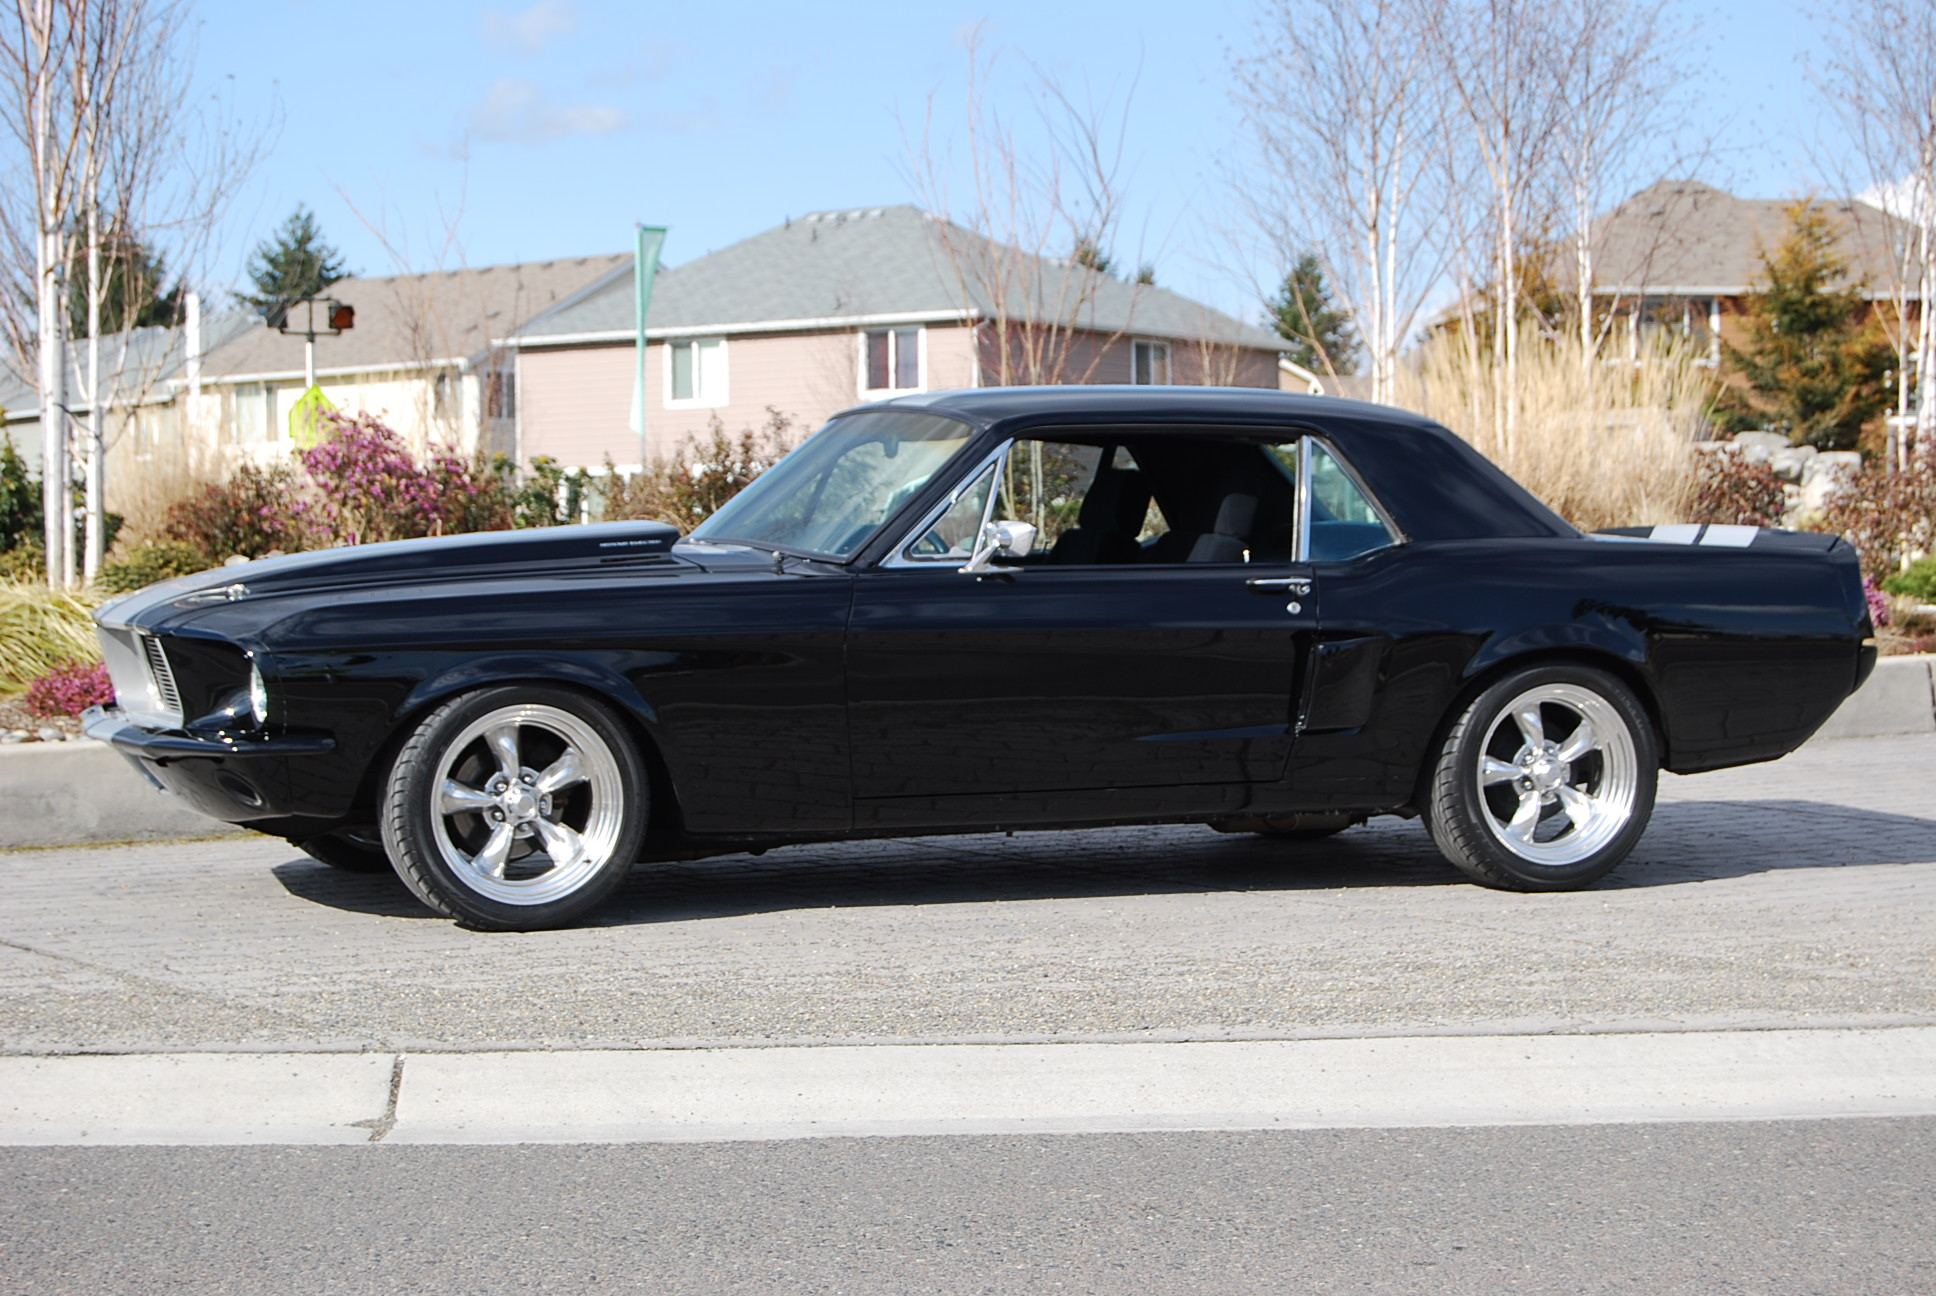 1968 ford mustang gt coupe picture mods upgrades